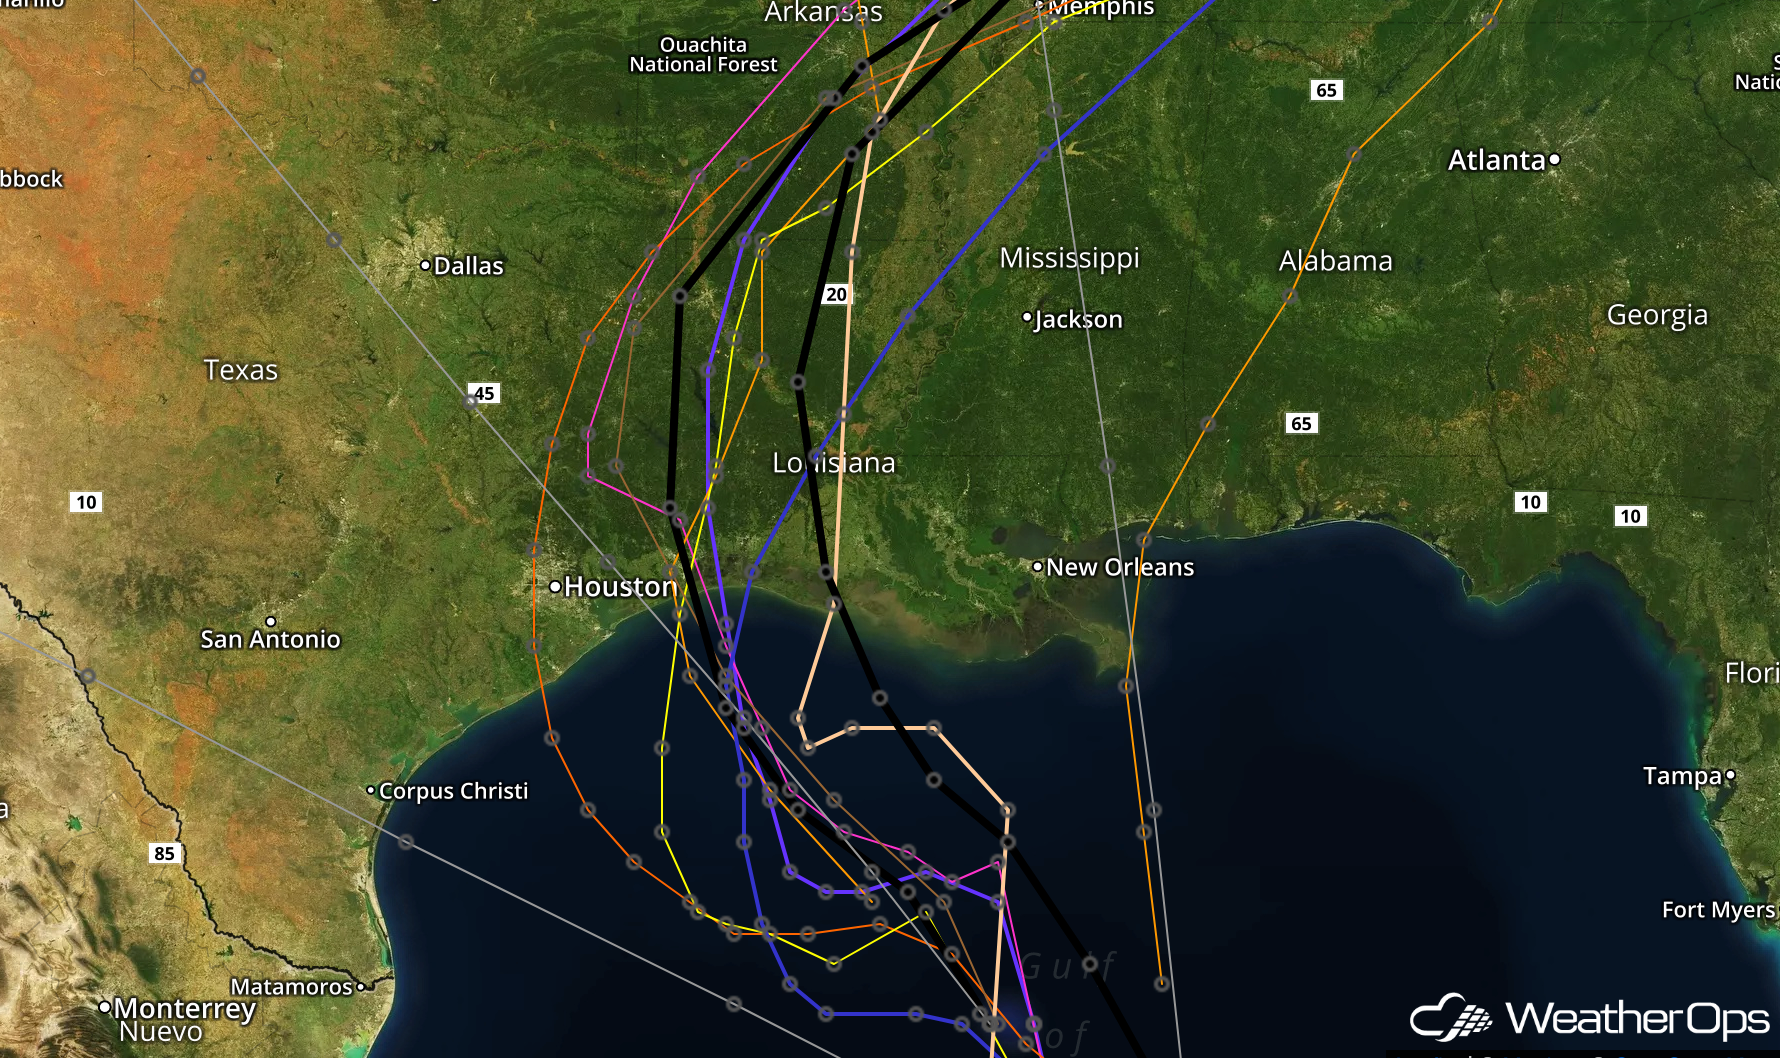 Forecast Model Tracks for TS Cindy, June 20, 2017